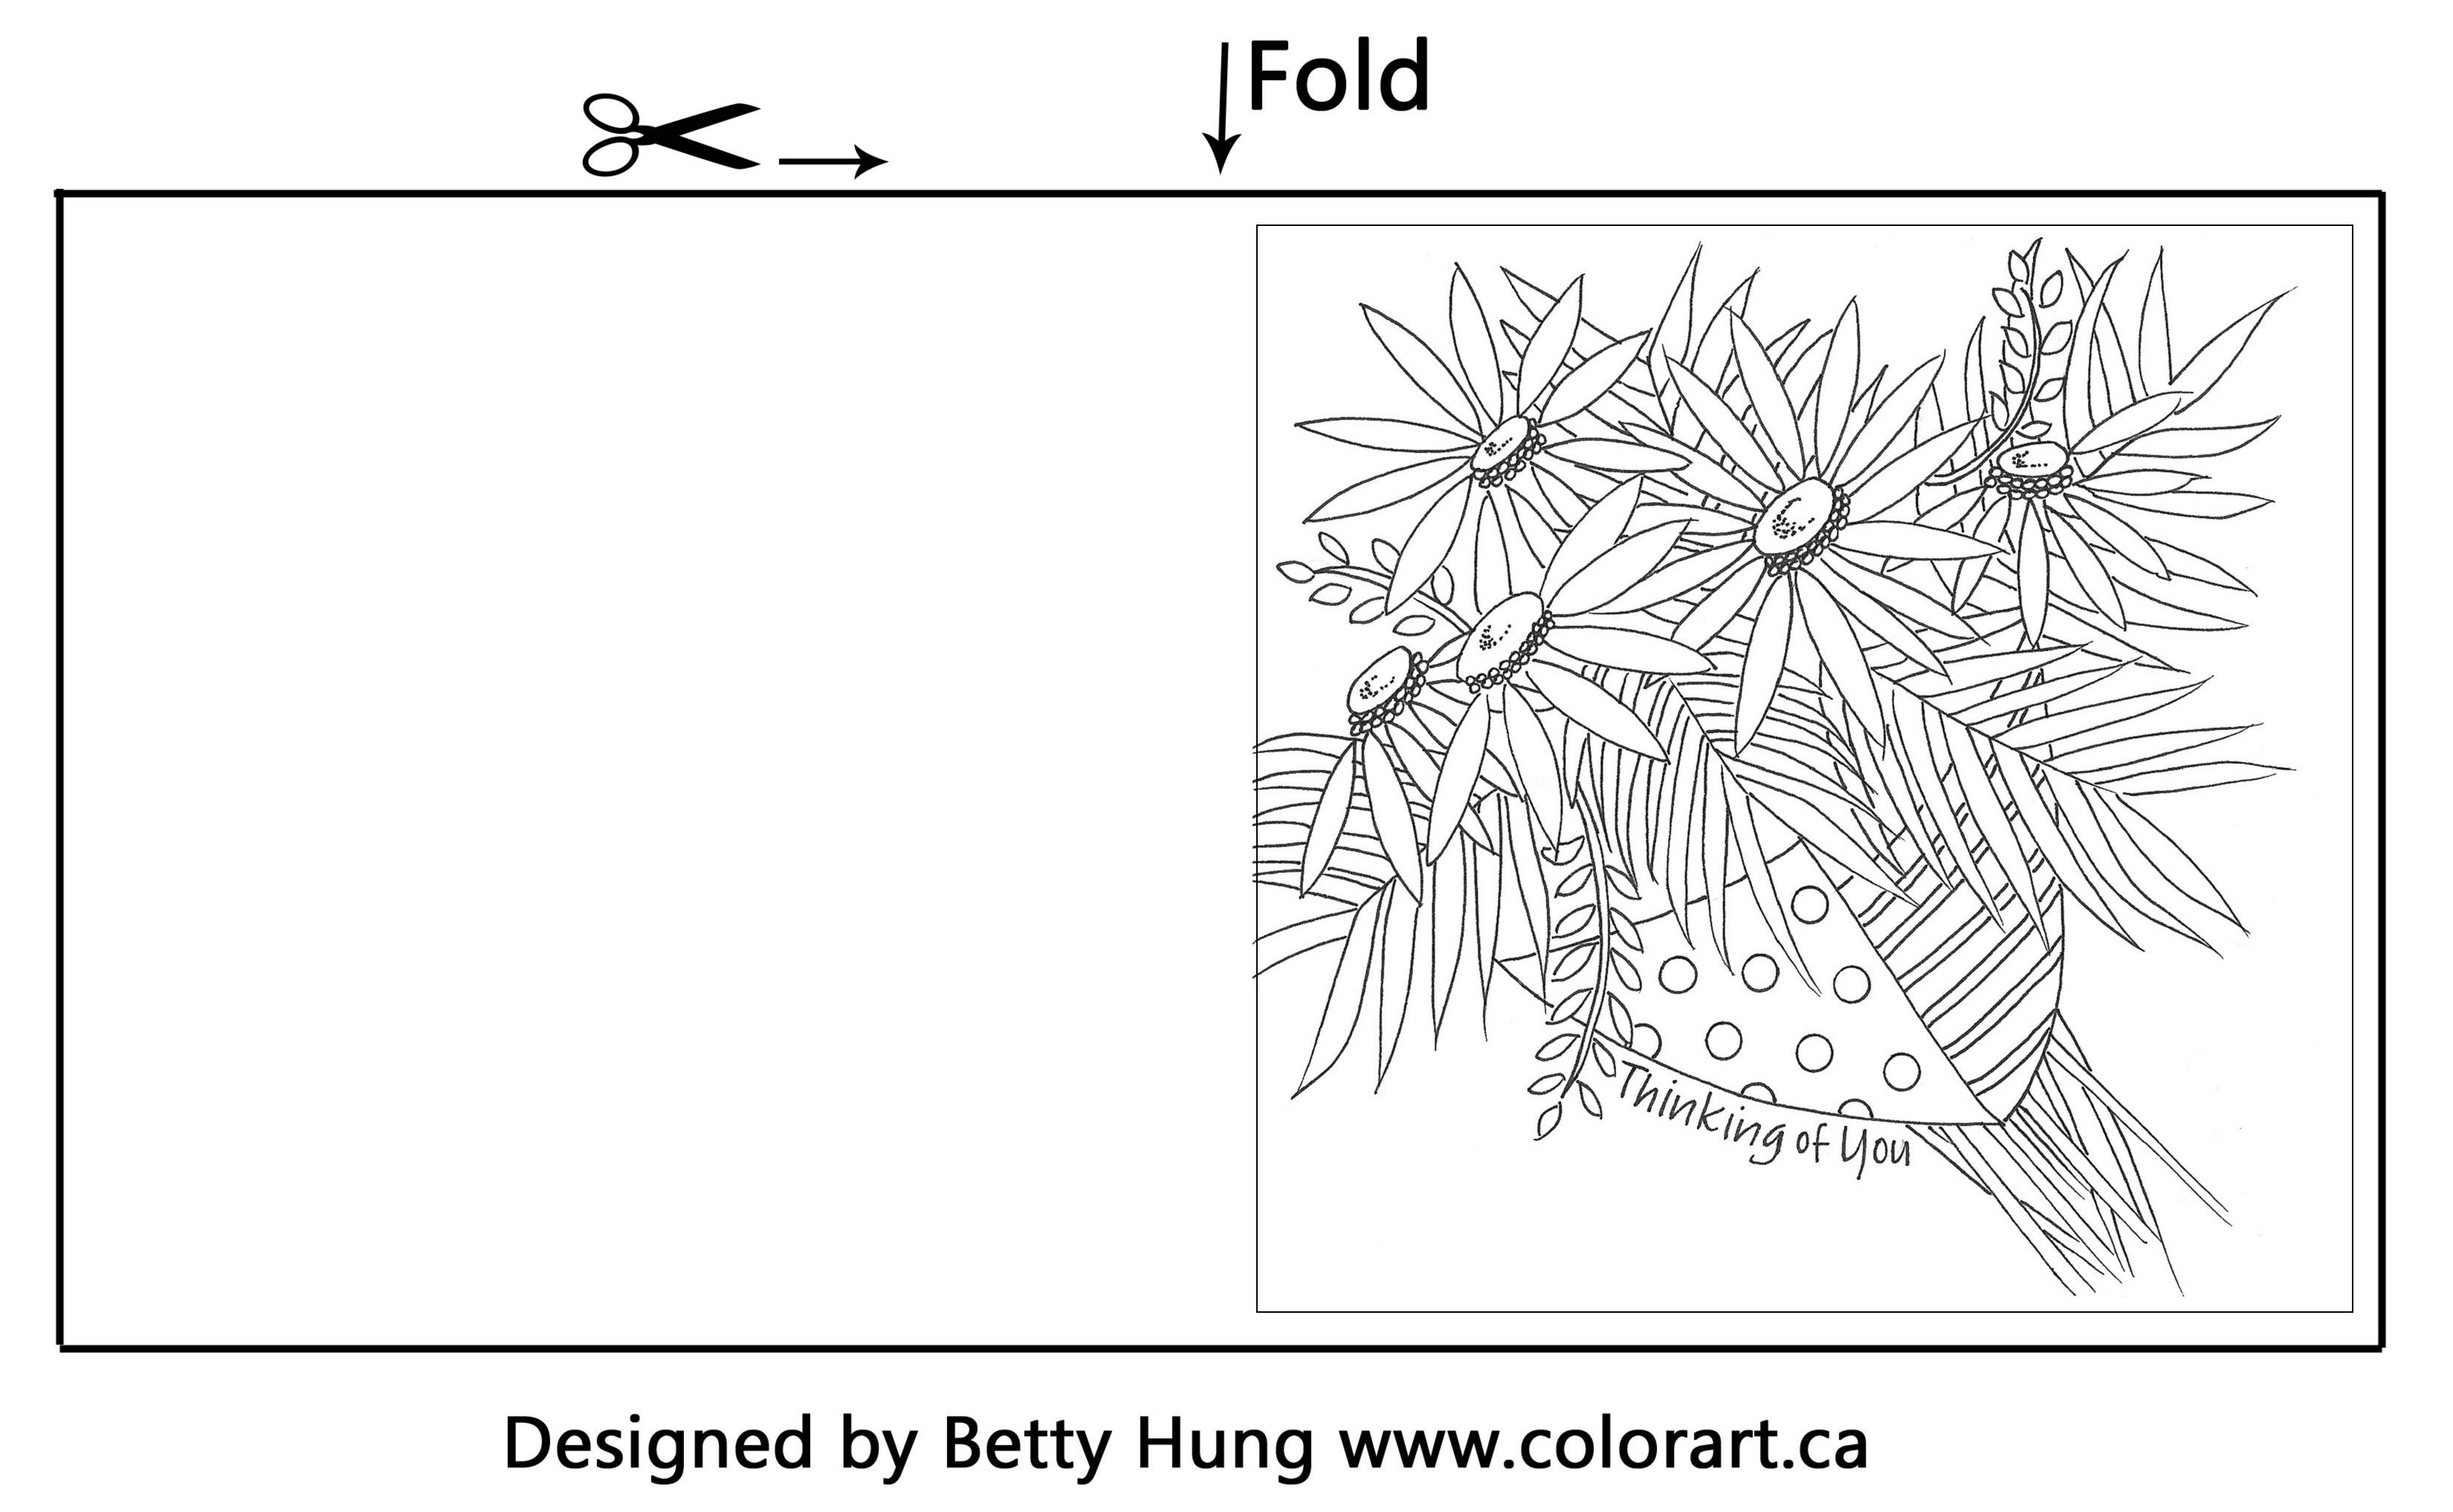 July free coloring card designed by Betty Hung